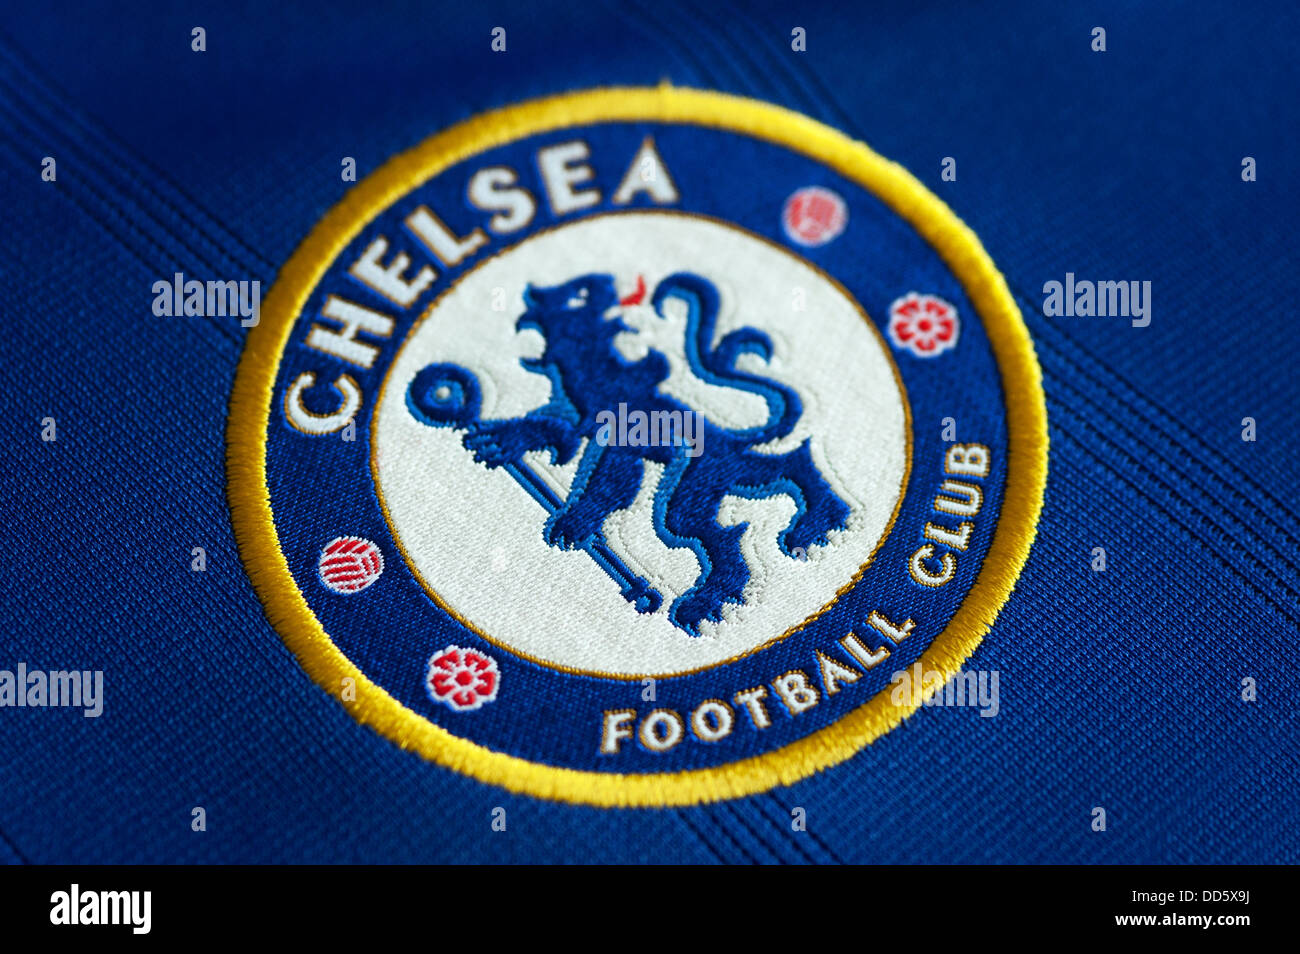 Chelsea Badge Stock Photos   Chelsea Badge Stock Images - Alamy f5644daf1